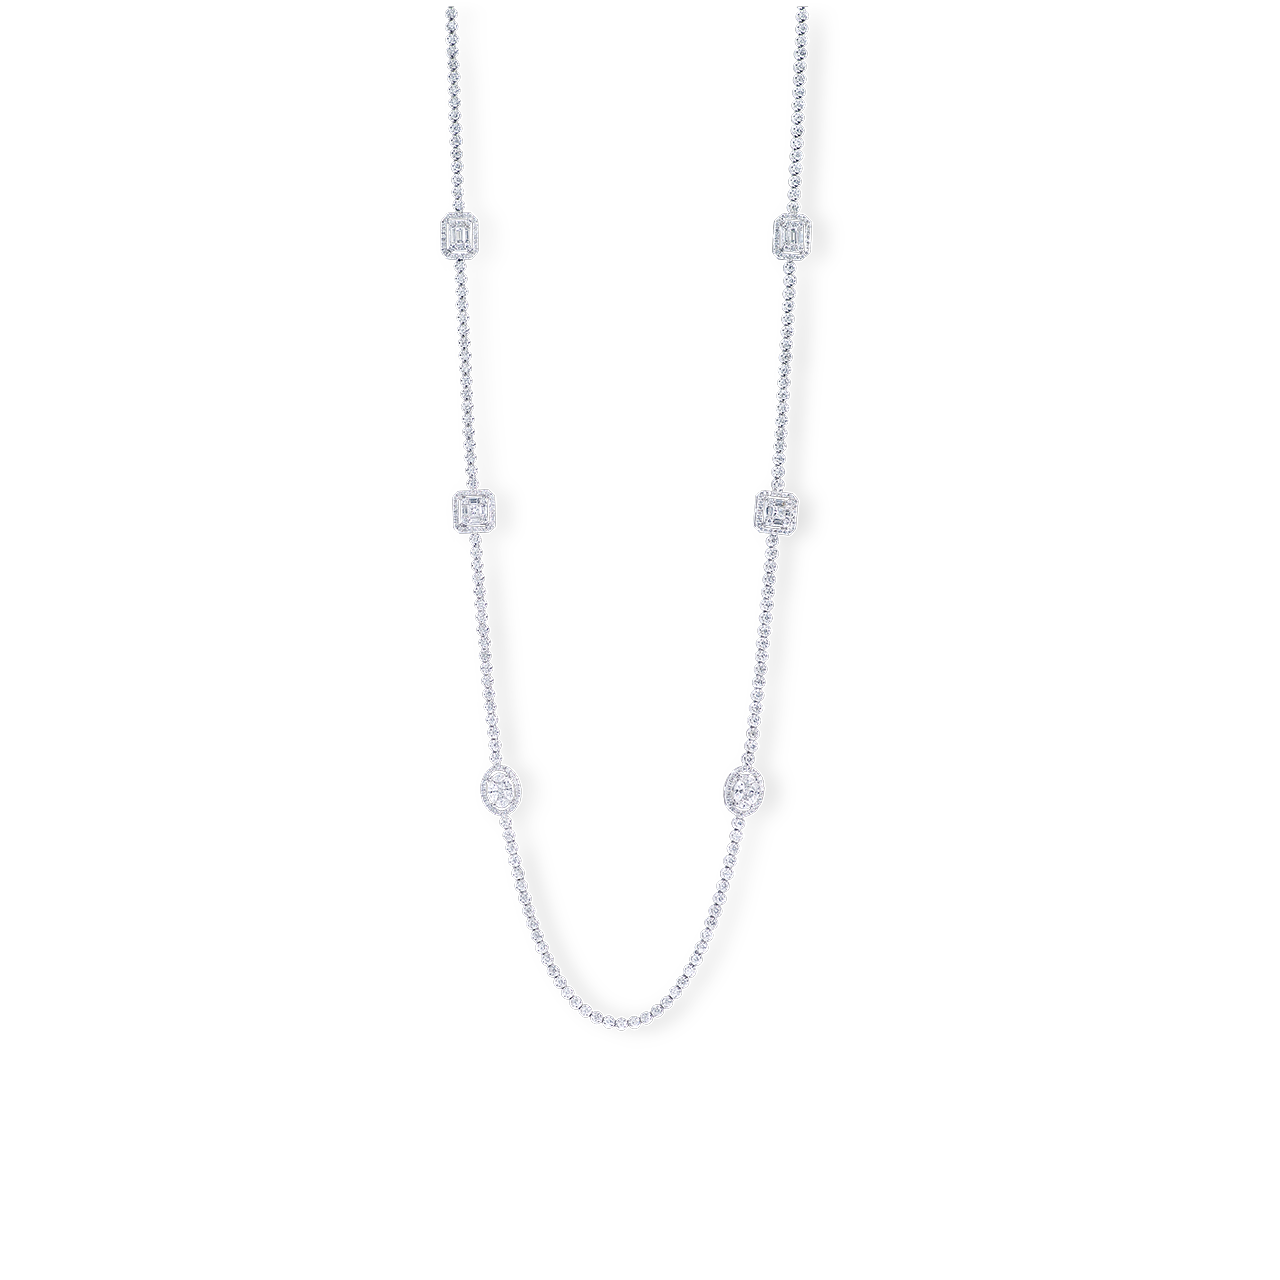 鑽石長套鍊 513P10.49克拉